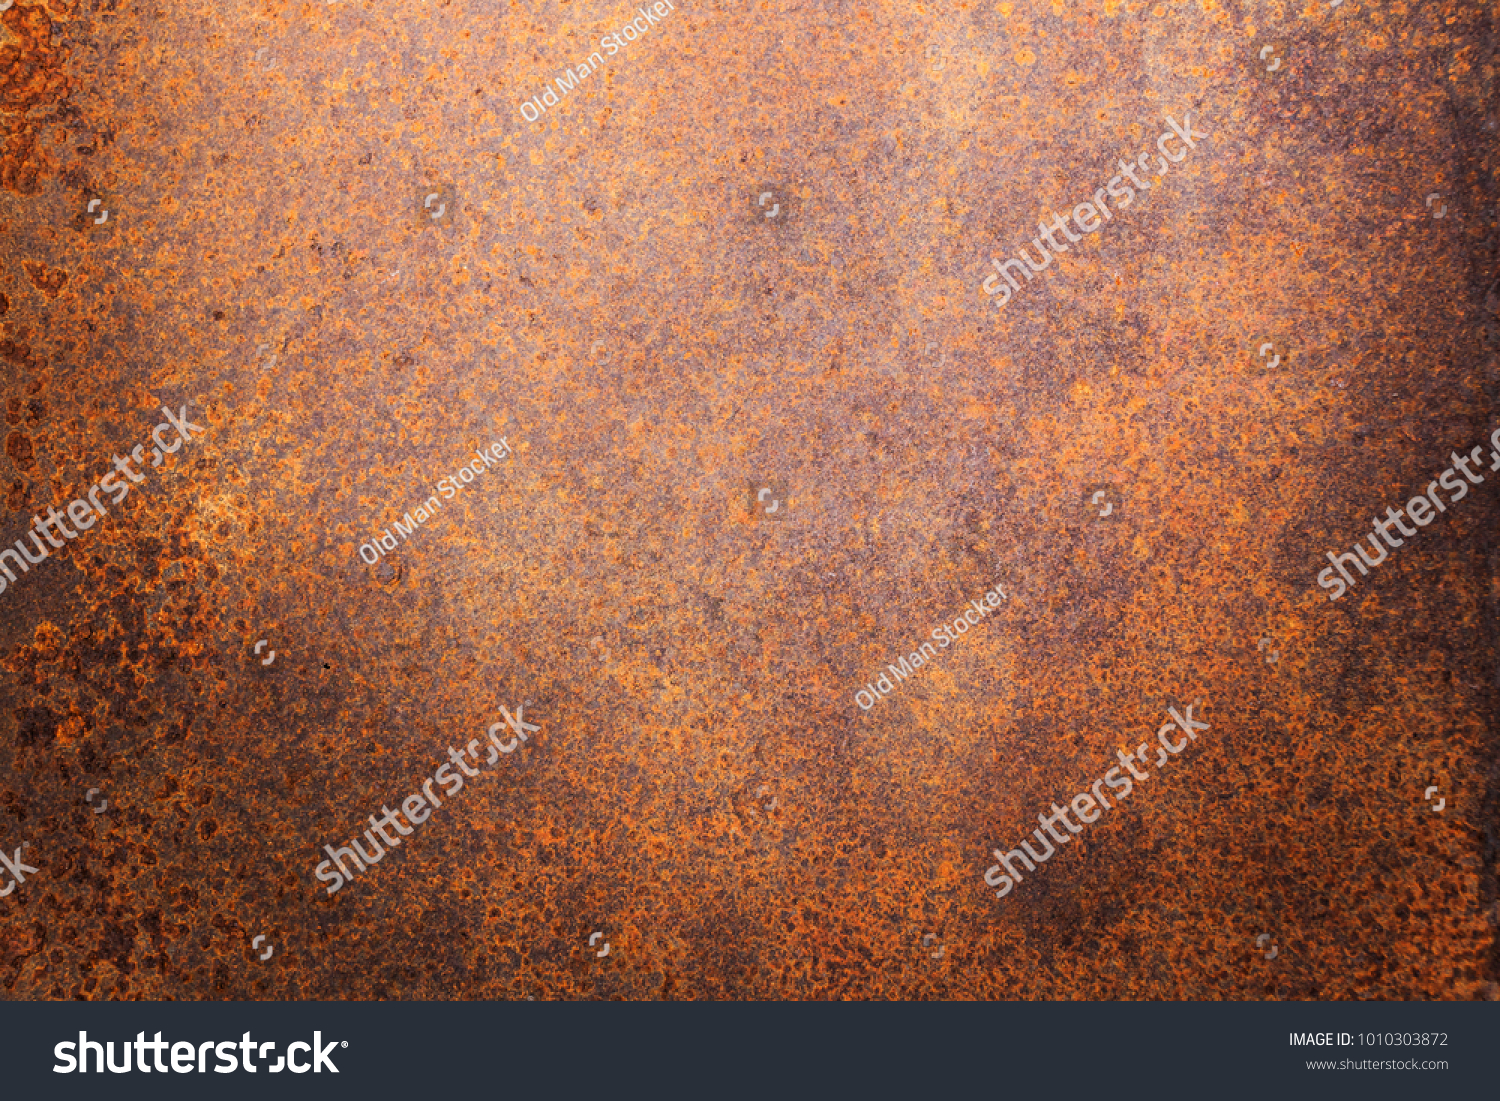 Rusty metal texture background for interior exterior decoration and industrial construction concept design. #1010303872